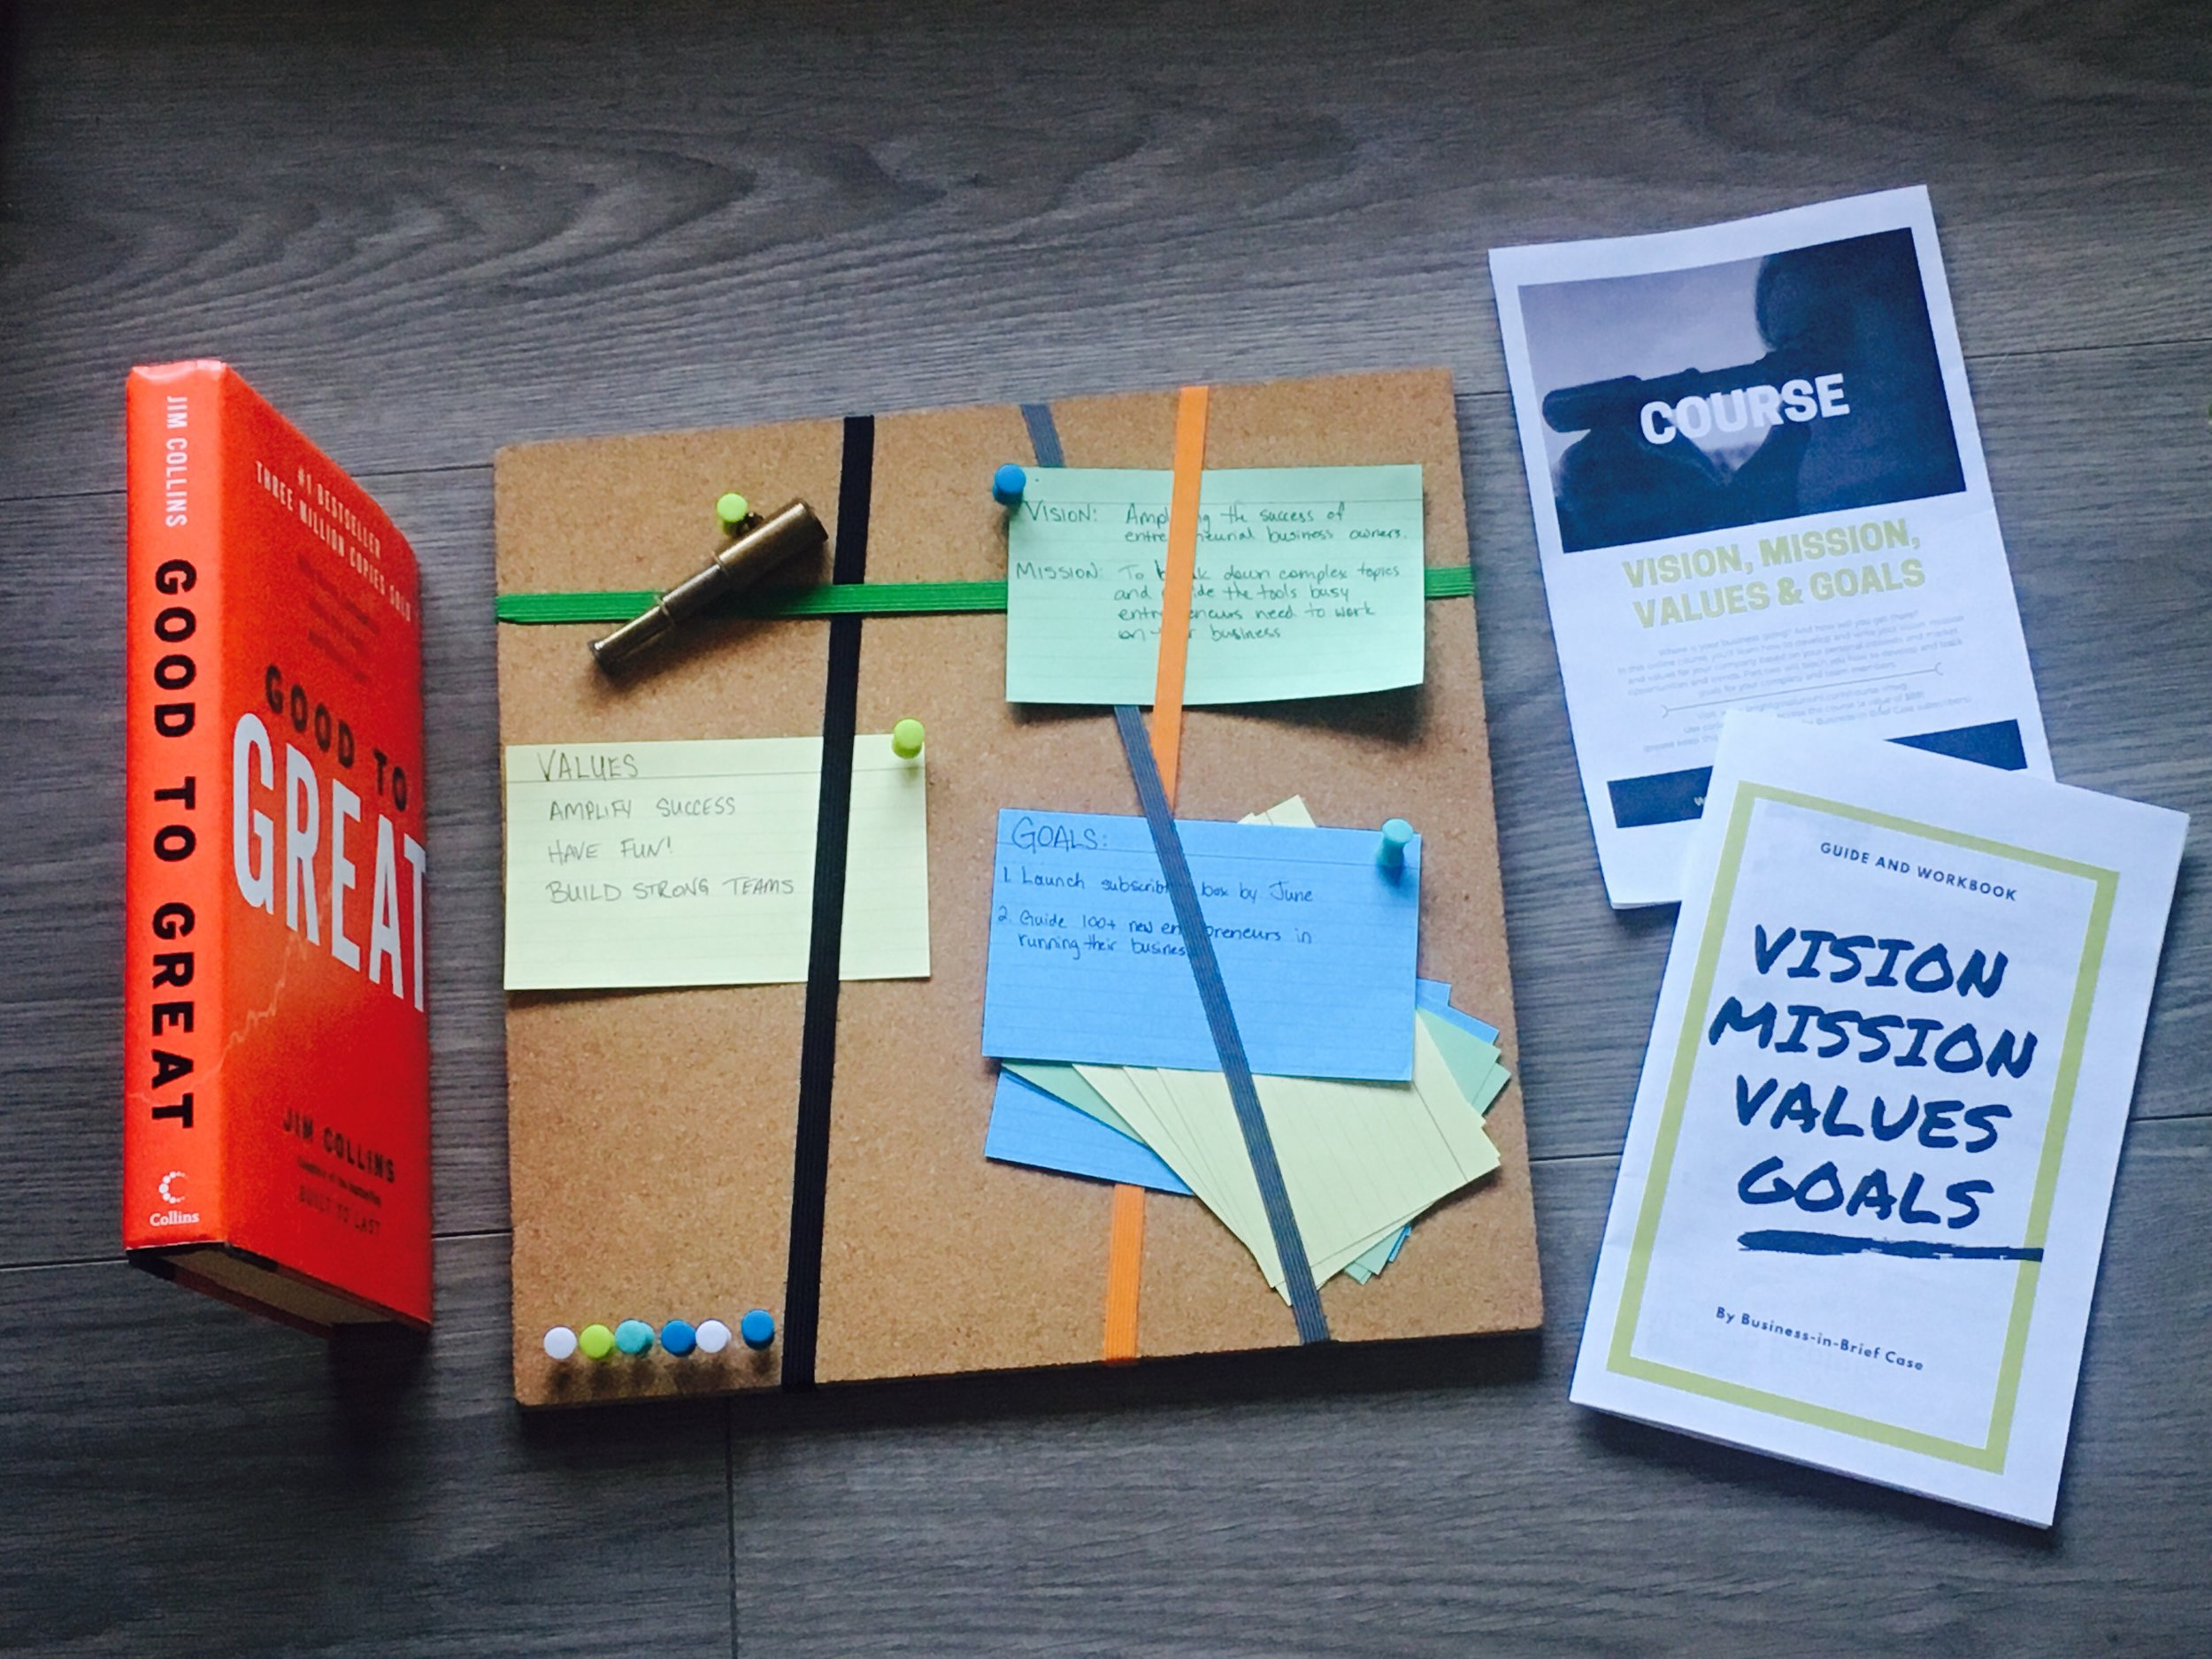 Business-in-brief Case - a monthly business and entrepreneurship learning kit subscription box